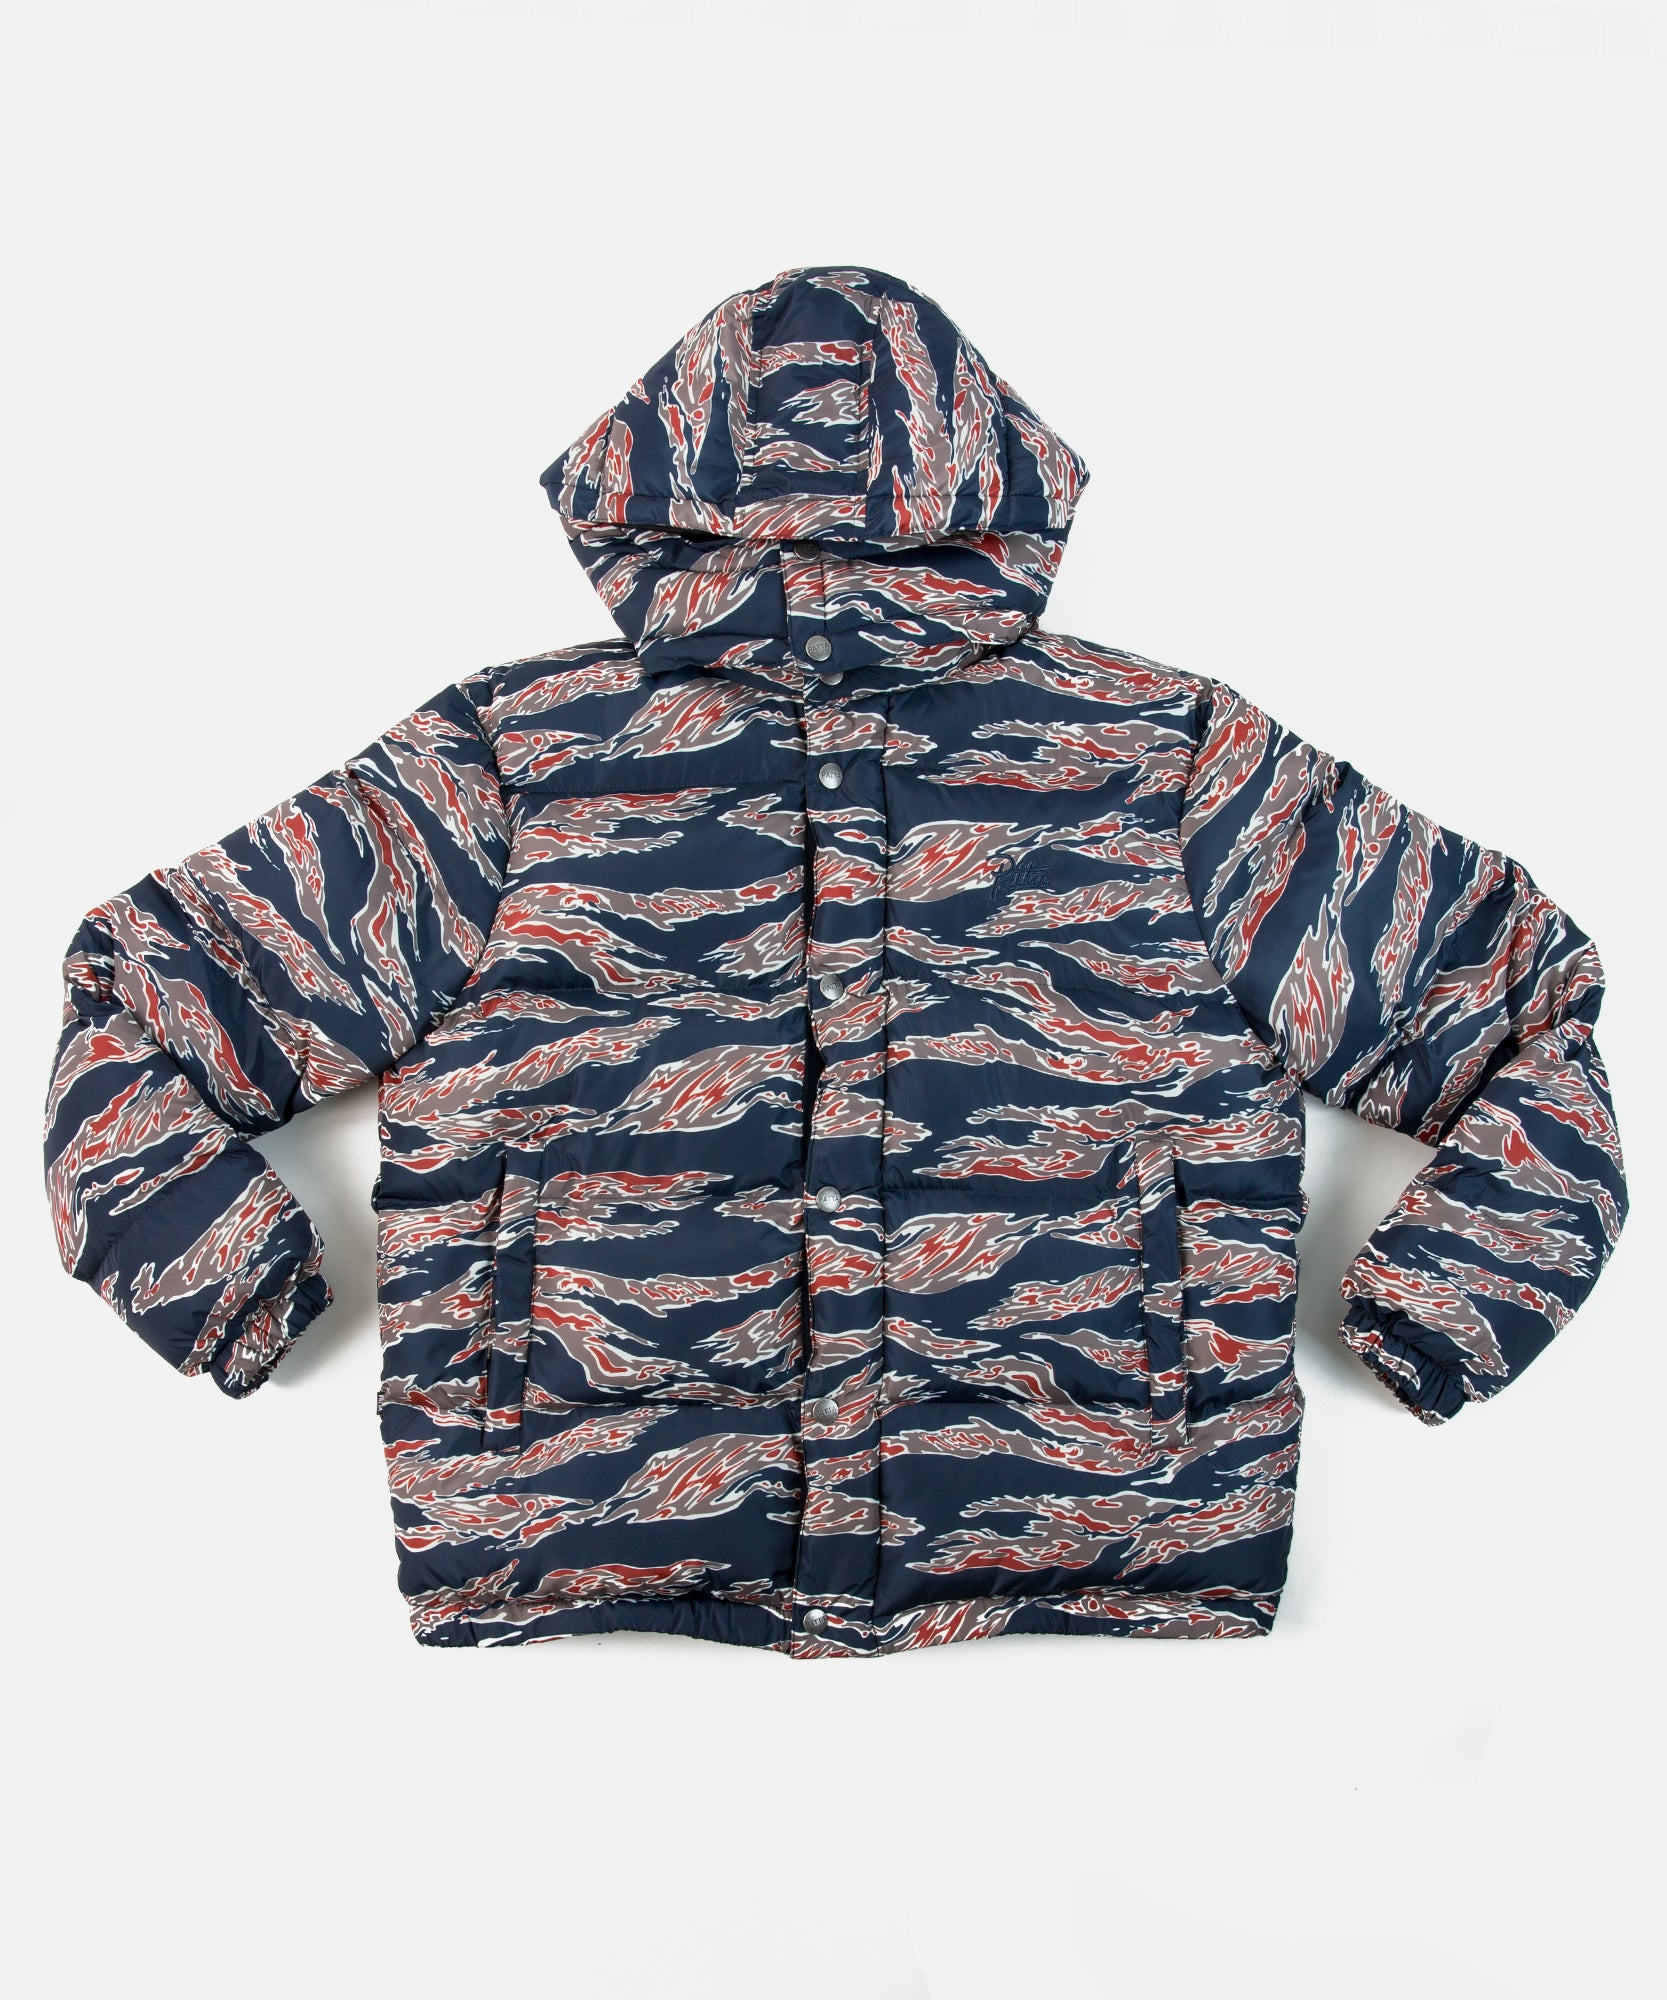 Patta Puffer Jacket (Tiger Stripe Camo)